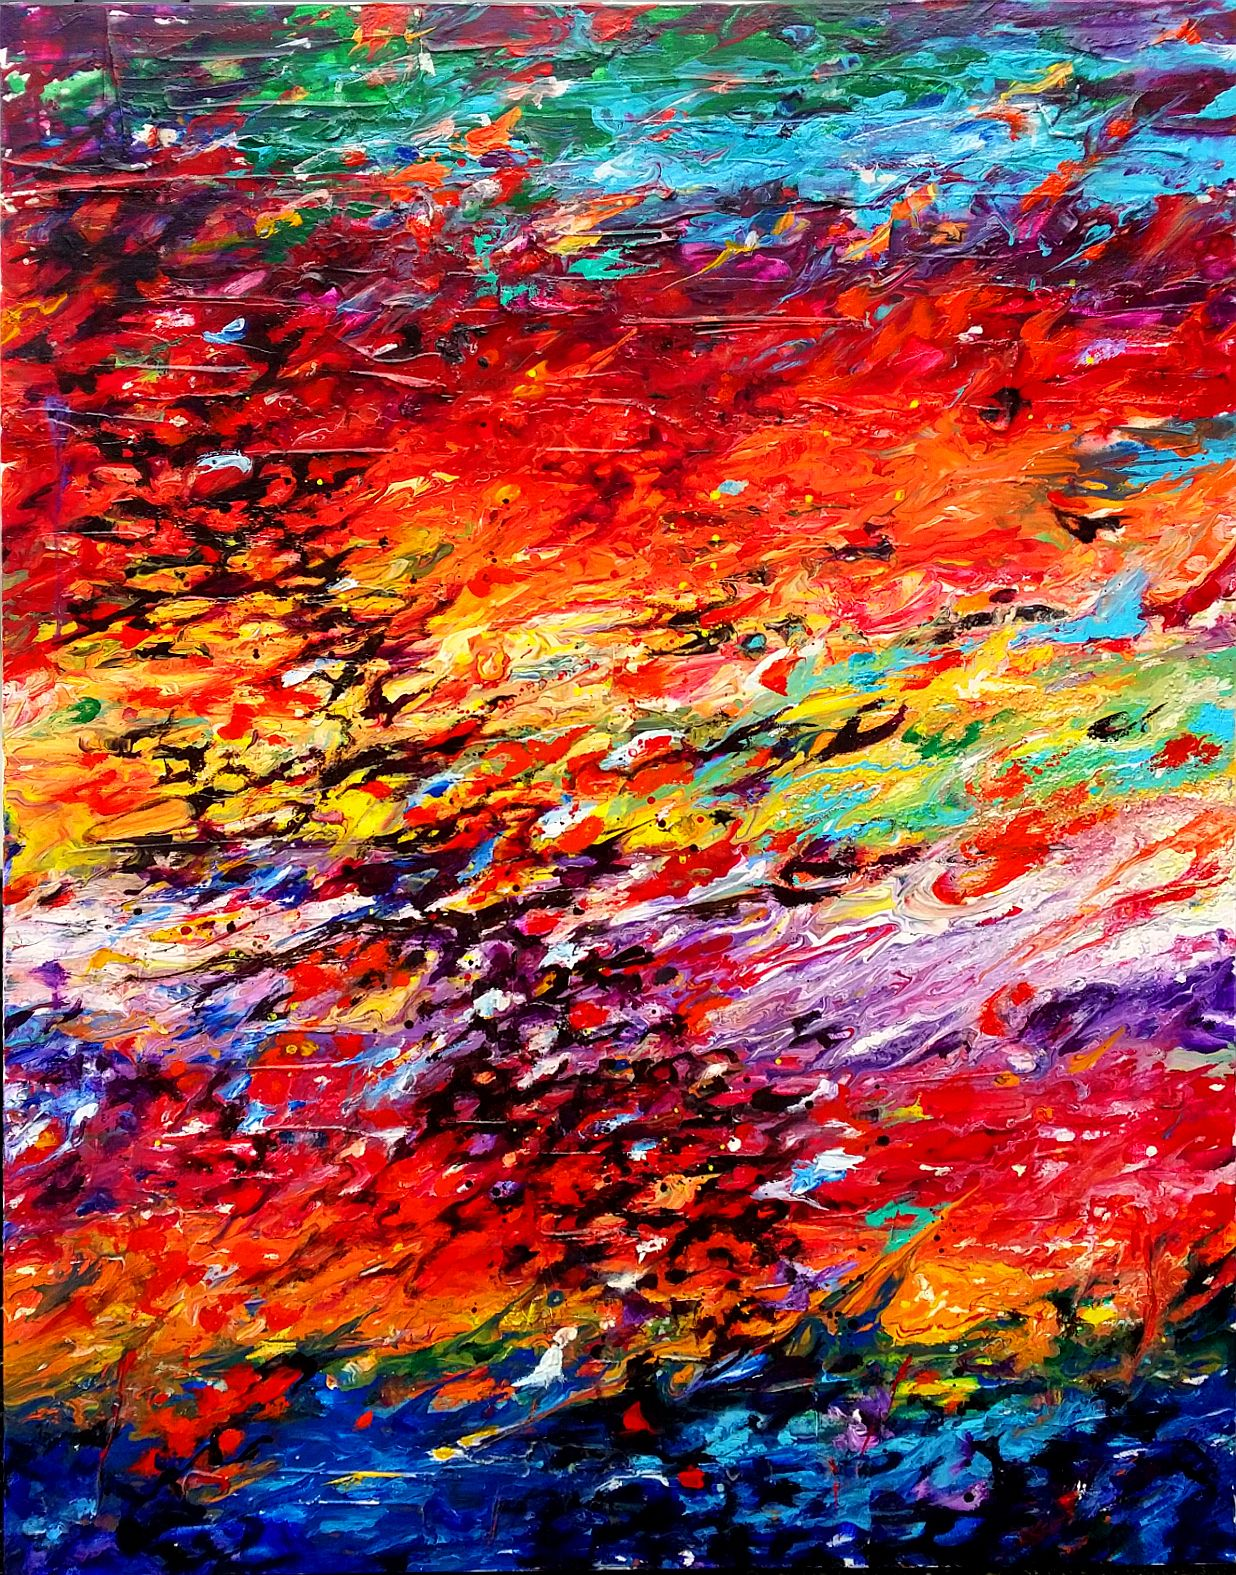 Composition #6. Series Abstract Sunsets. 48x36